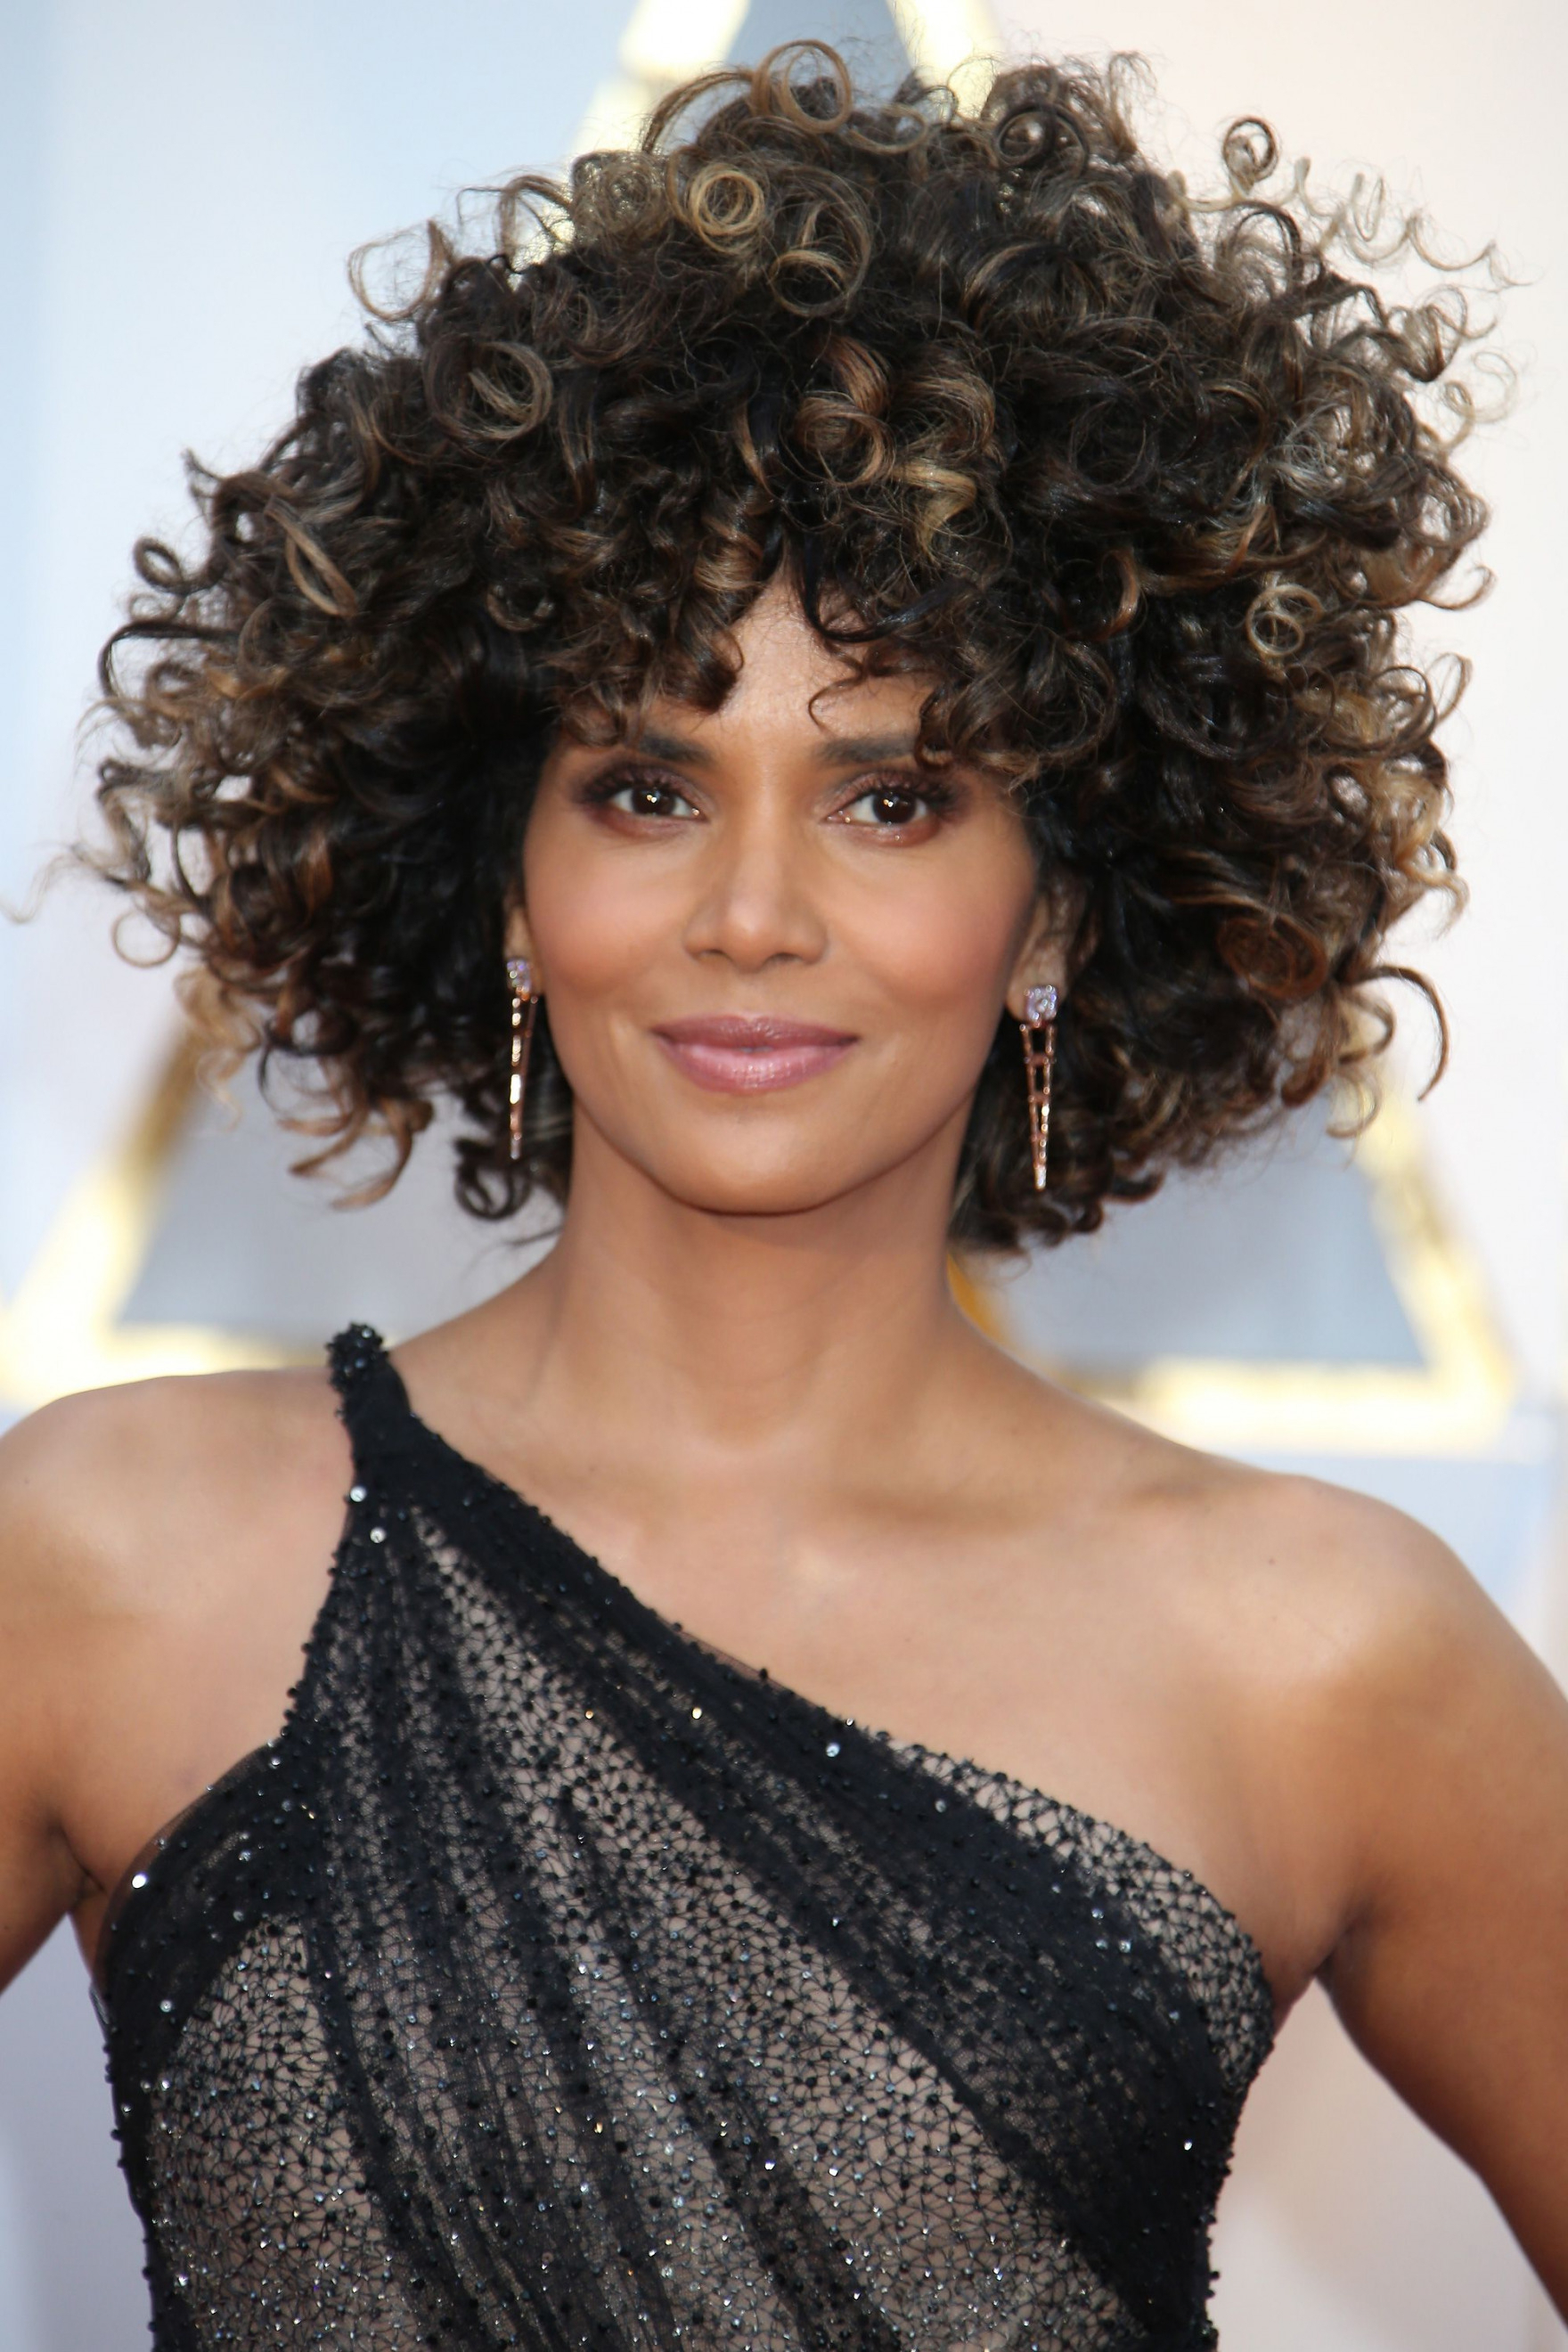 Latest Hairstyles And Haircuts For In Current Medium Haircuts For Curly Black Hair (Gallery 17 of 20)